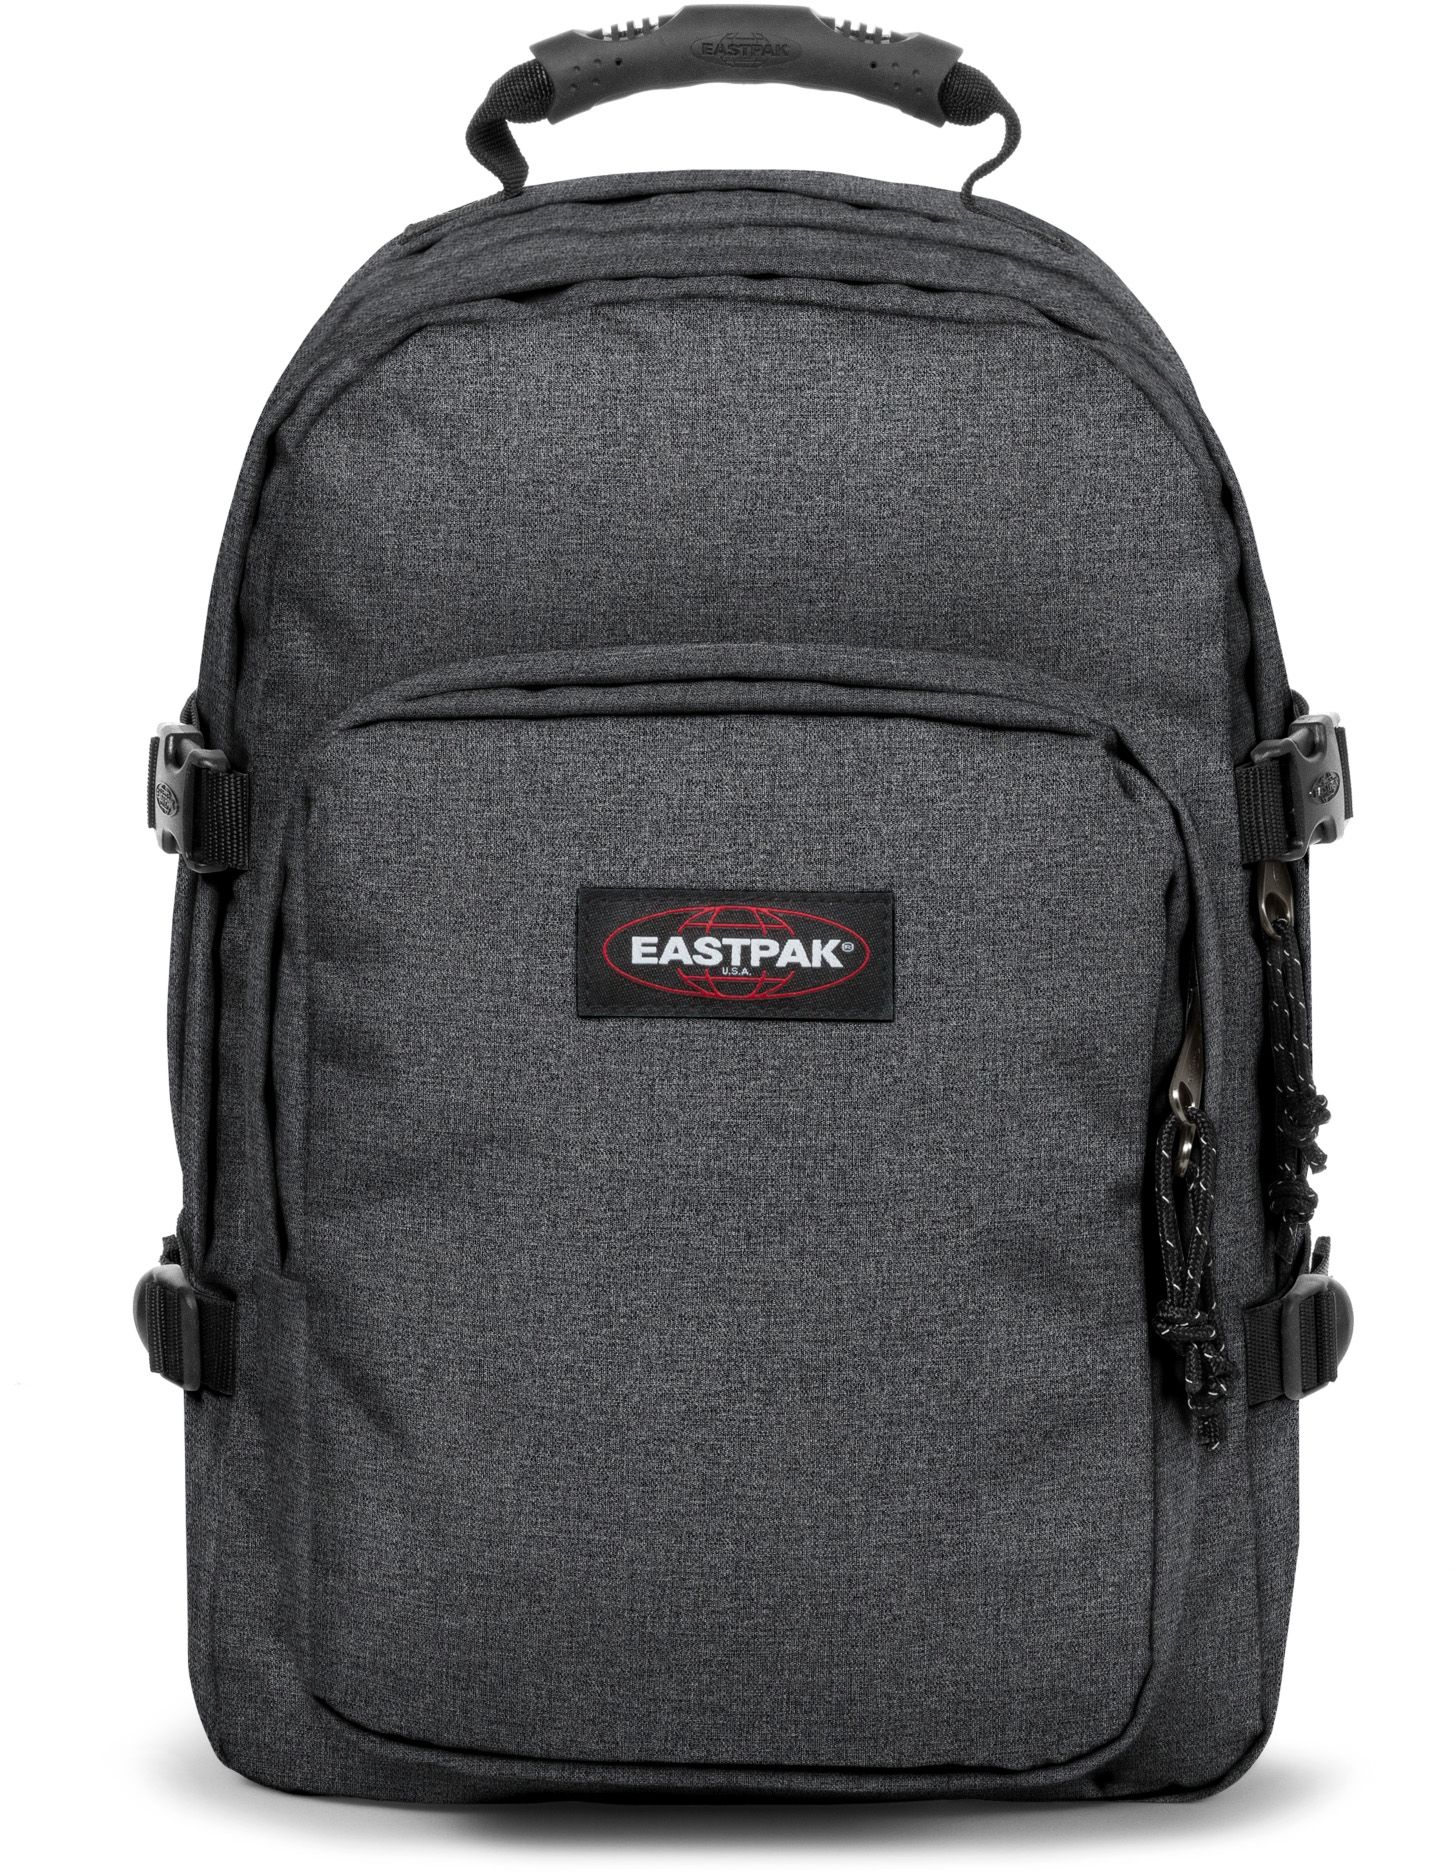 EASTPAK Eastpak Rucksack mit Laptopfach, »PROVIDER black denim«